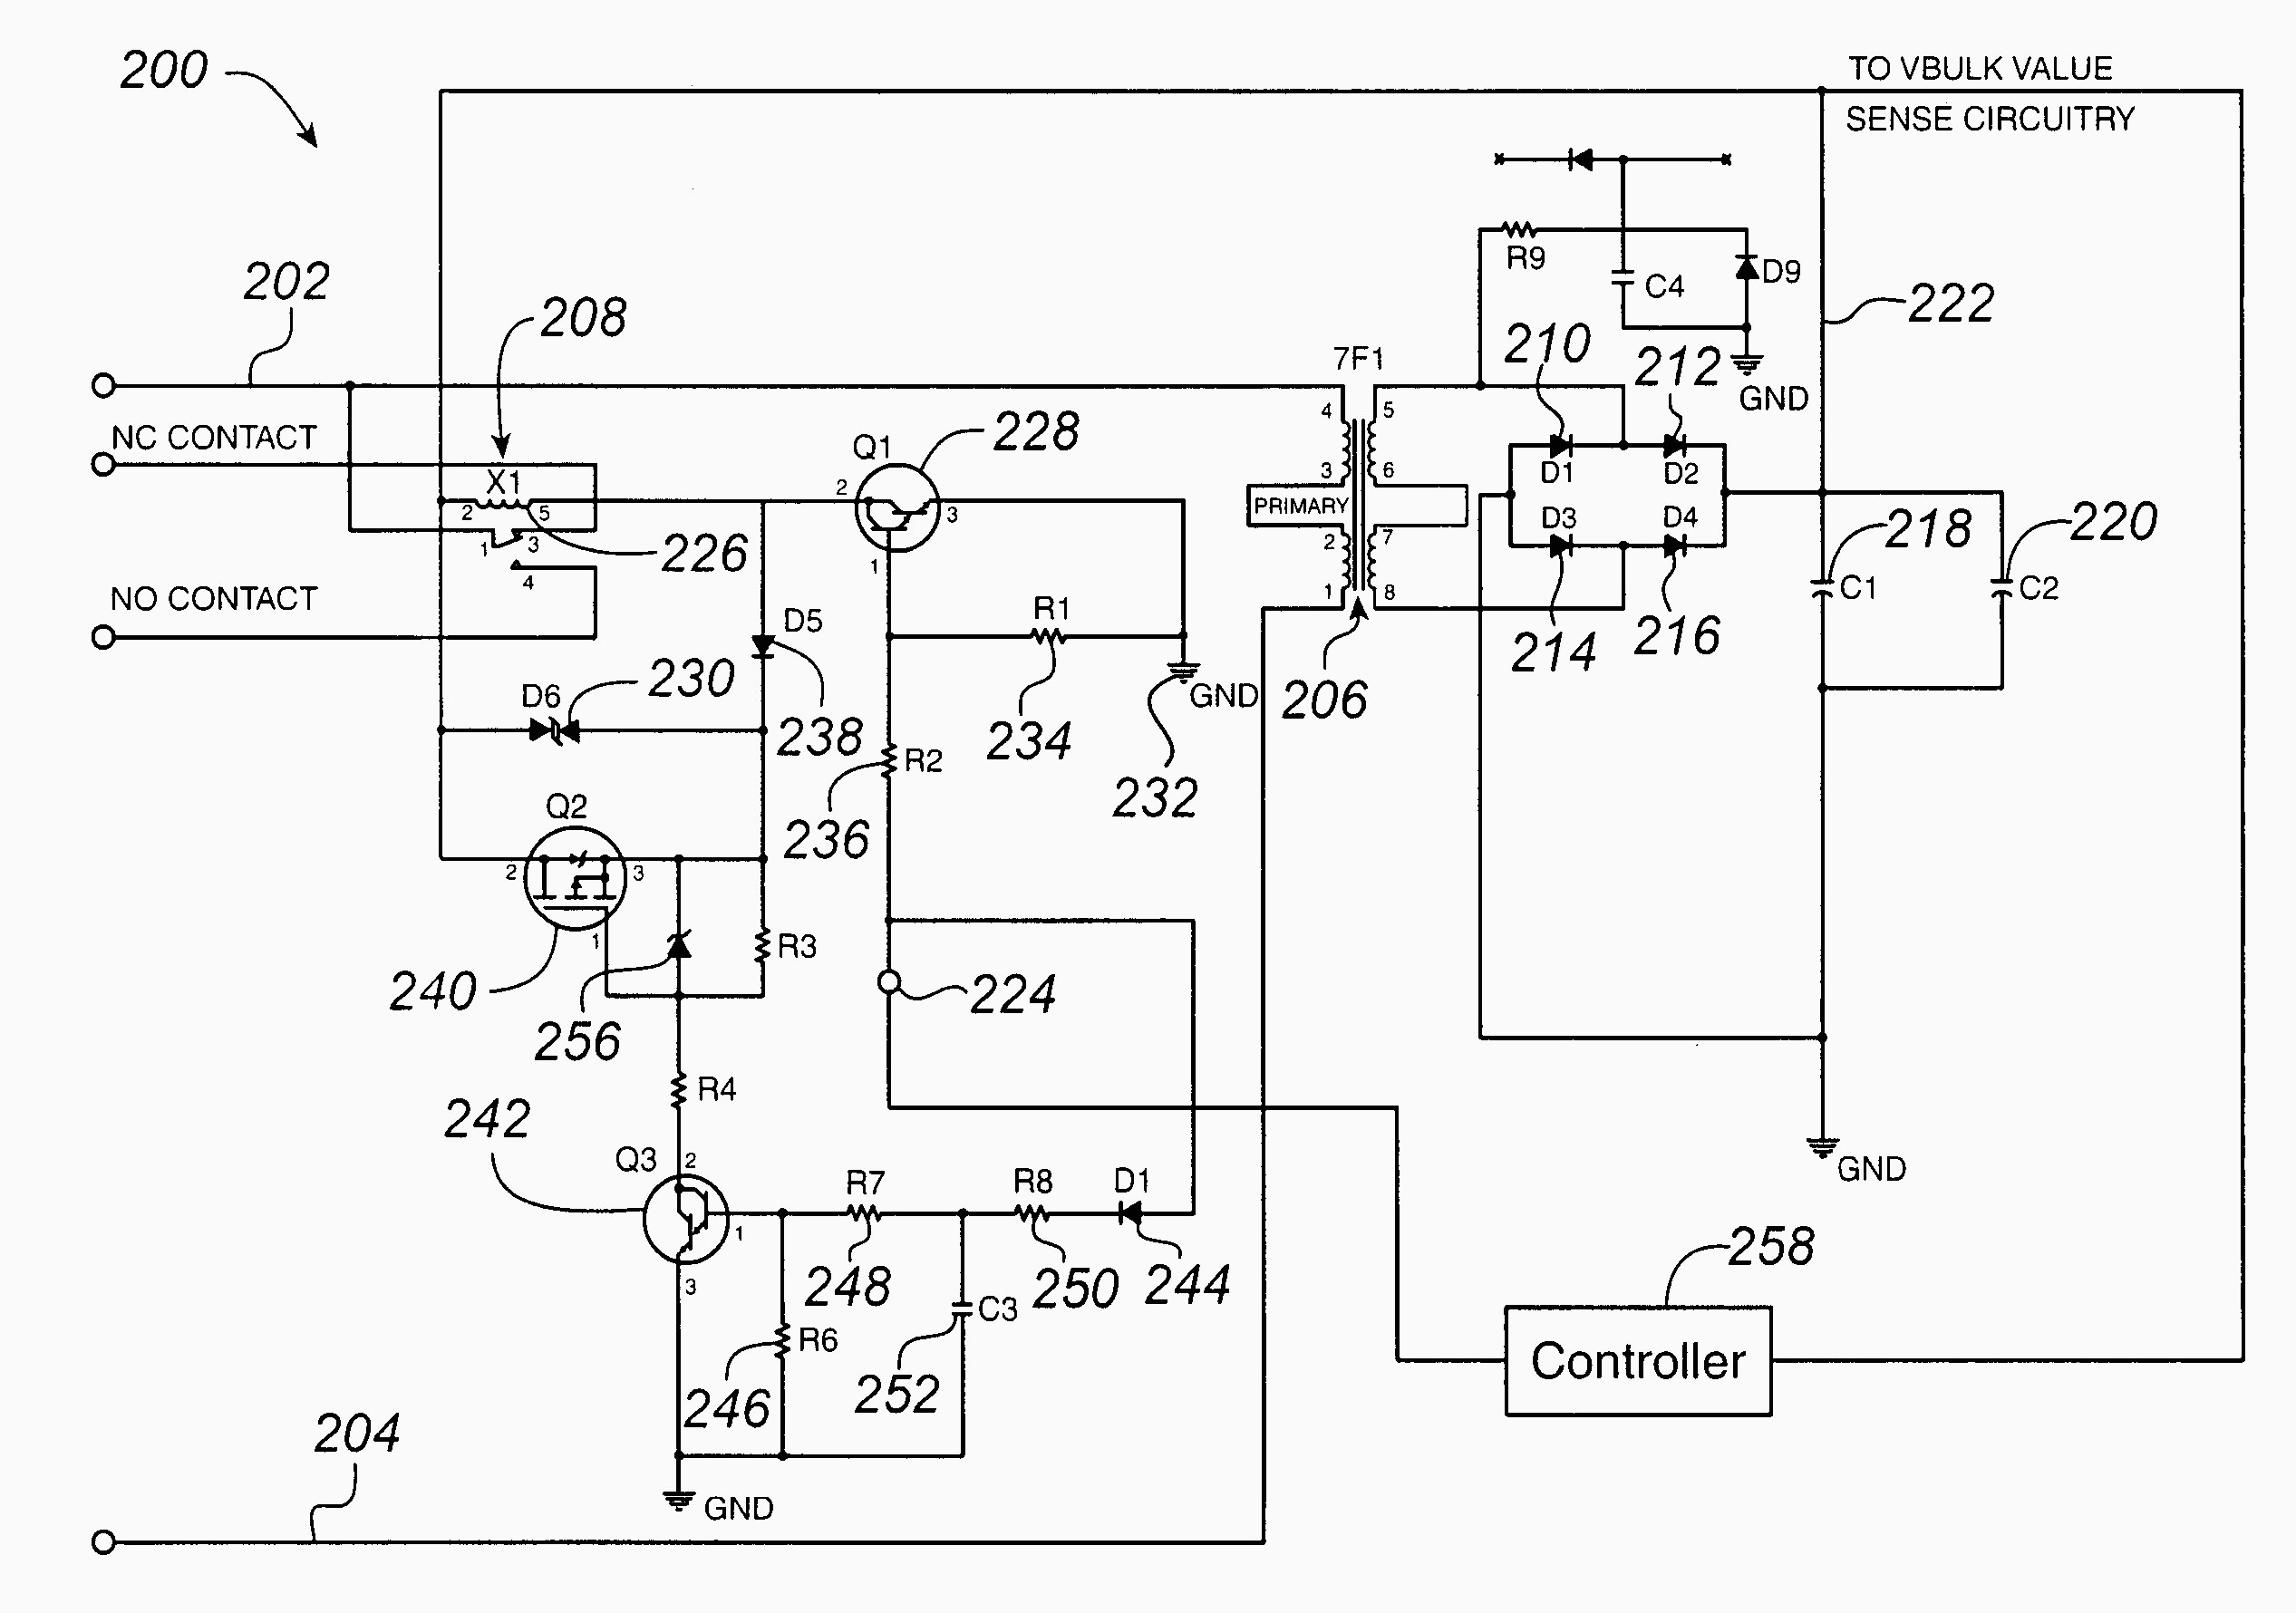 wiring diagram defrost timer true t 49f wiring diagrams for defrost